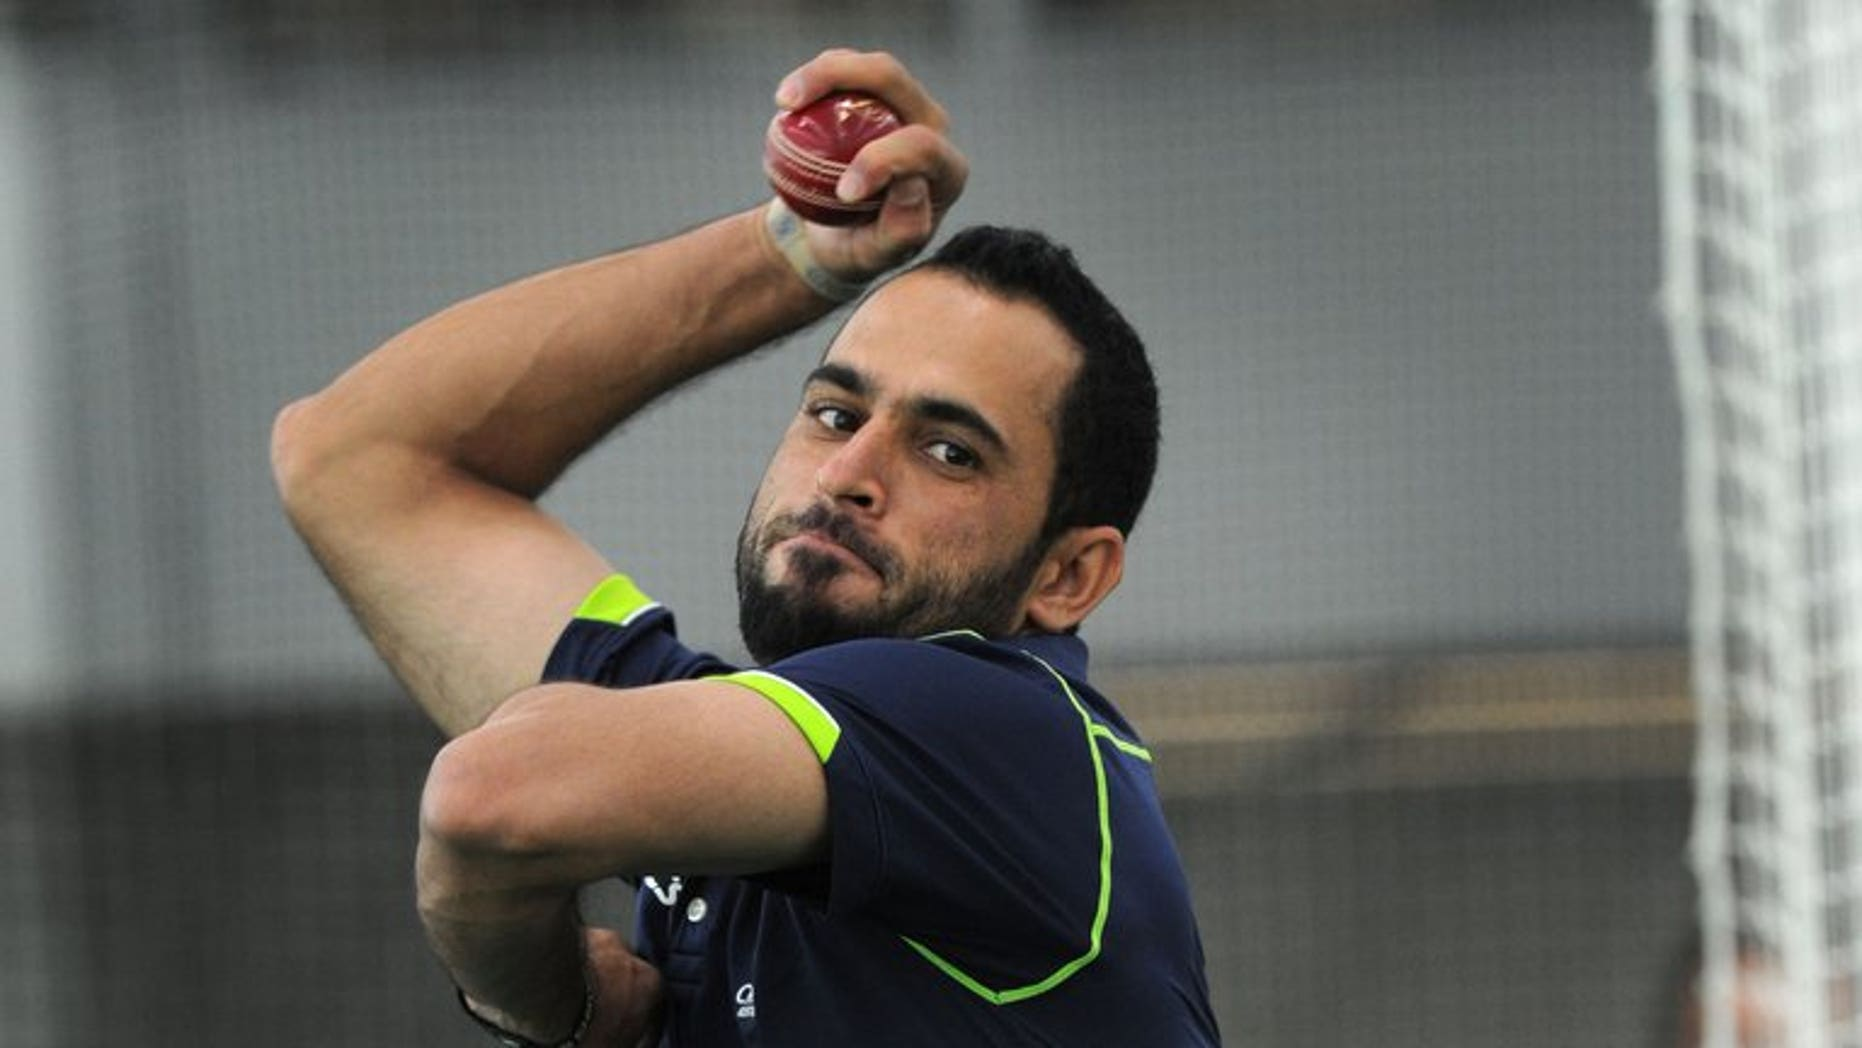 Legspinner Fawad Ahmed bowls at the indoor cricket nets at the MCG in Melbourne on June 6, 2013. England great Graham Gooch expressed surprise Tuesday that Australia were prepared to pick Ahmed